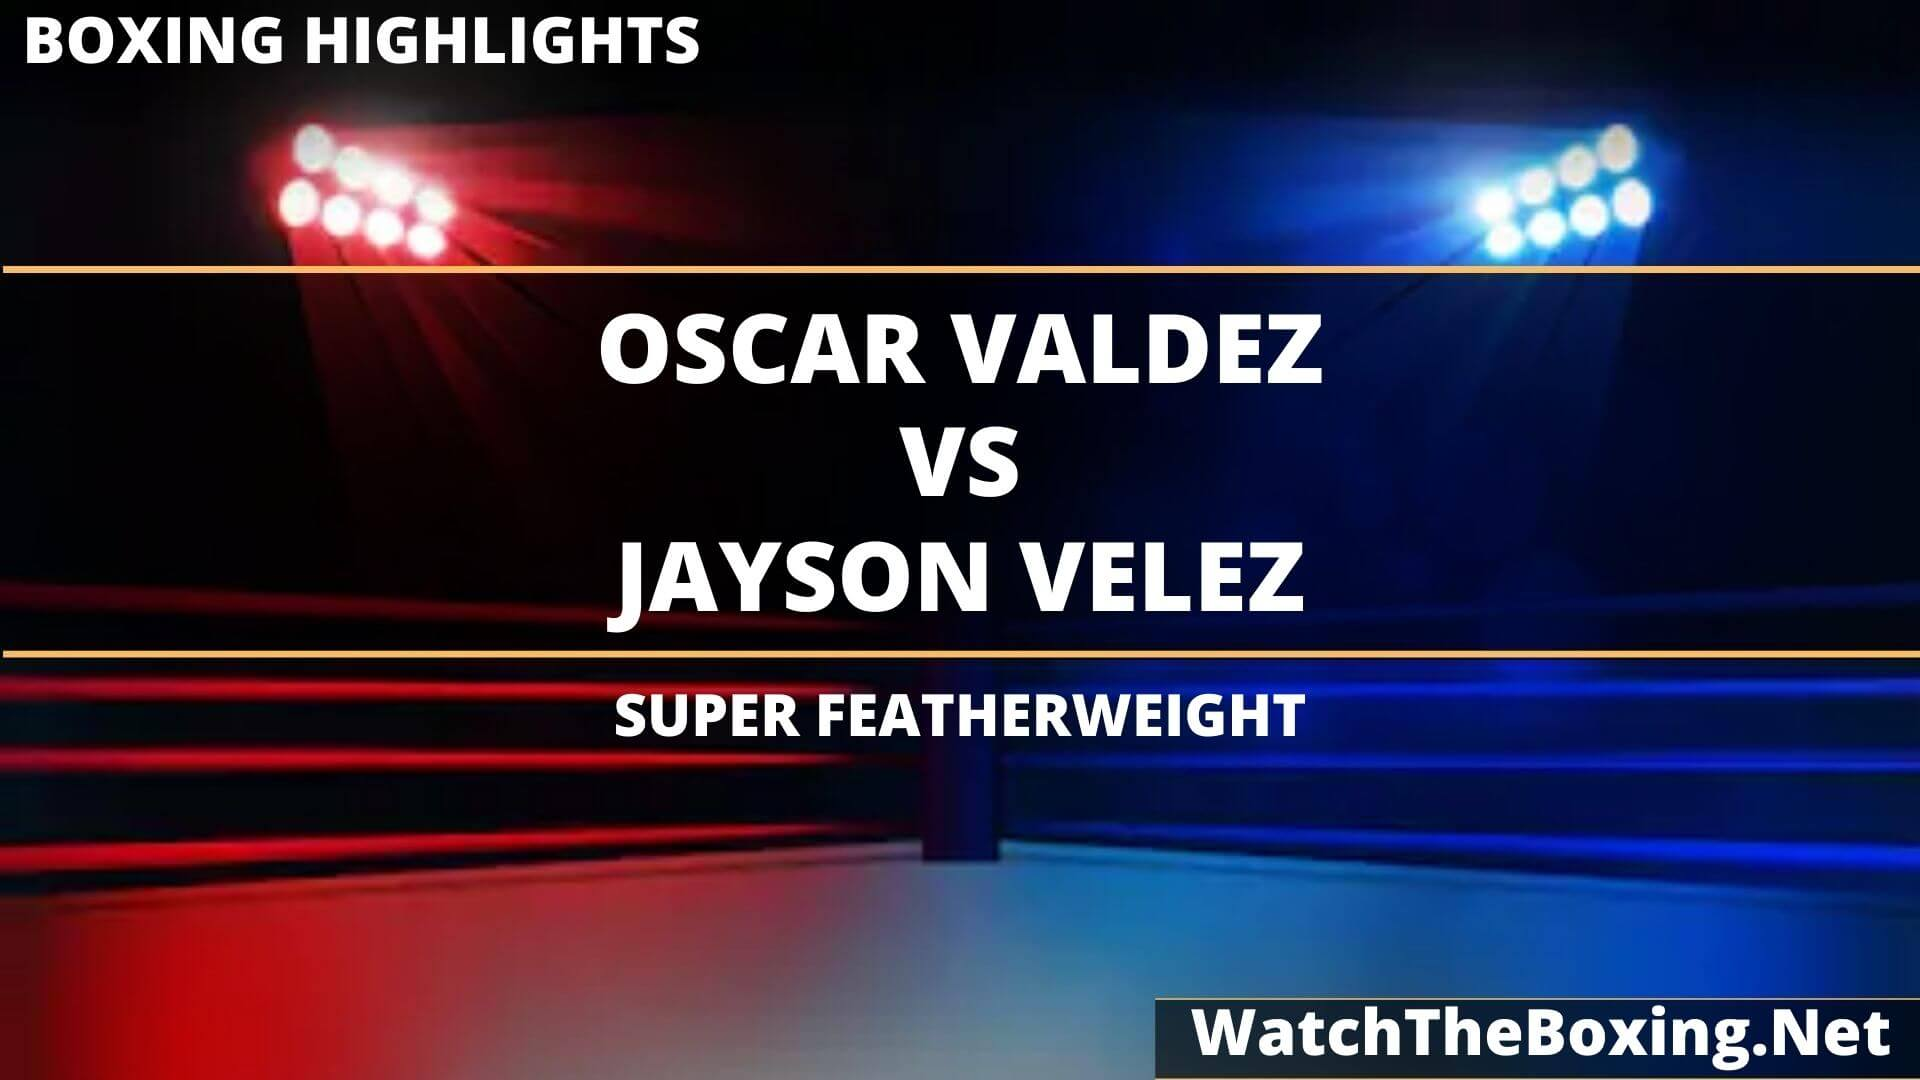 Oscar Valdez Vs Jayson Velez Highlights 2020 Super Featherweight